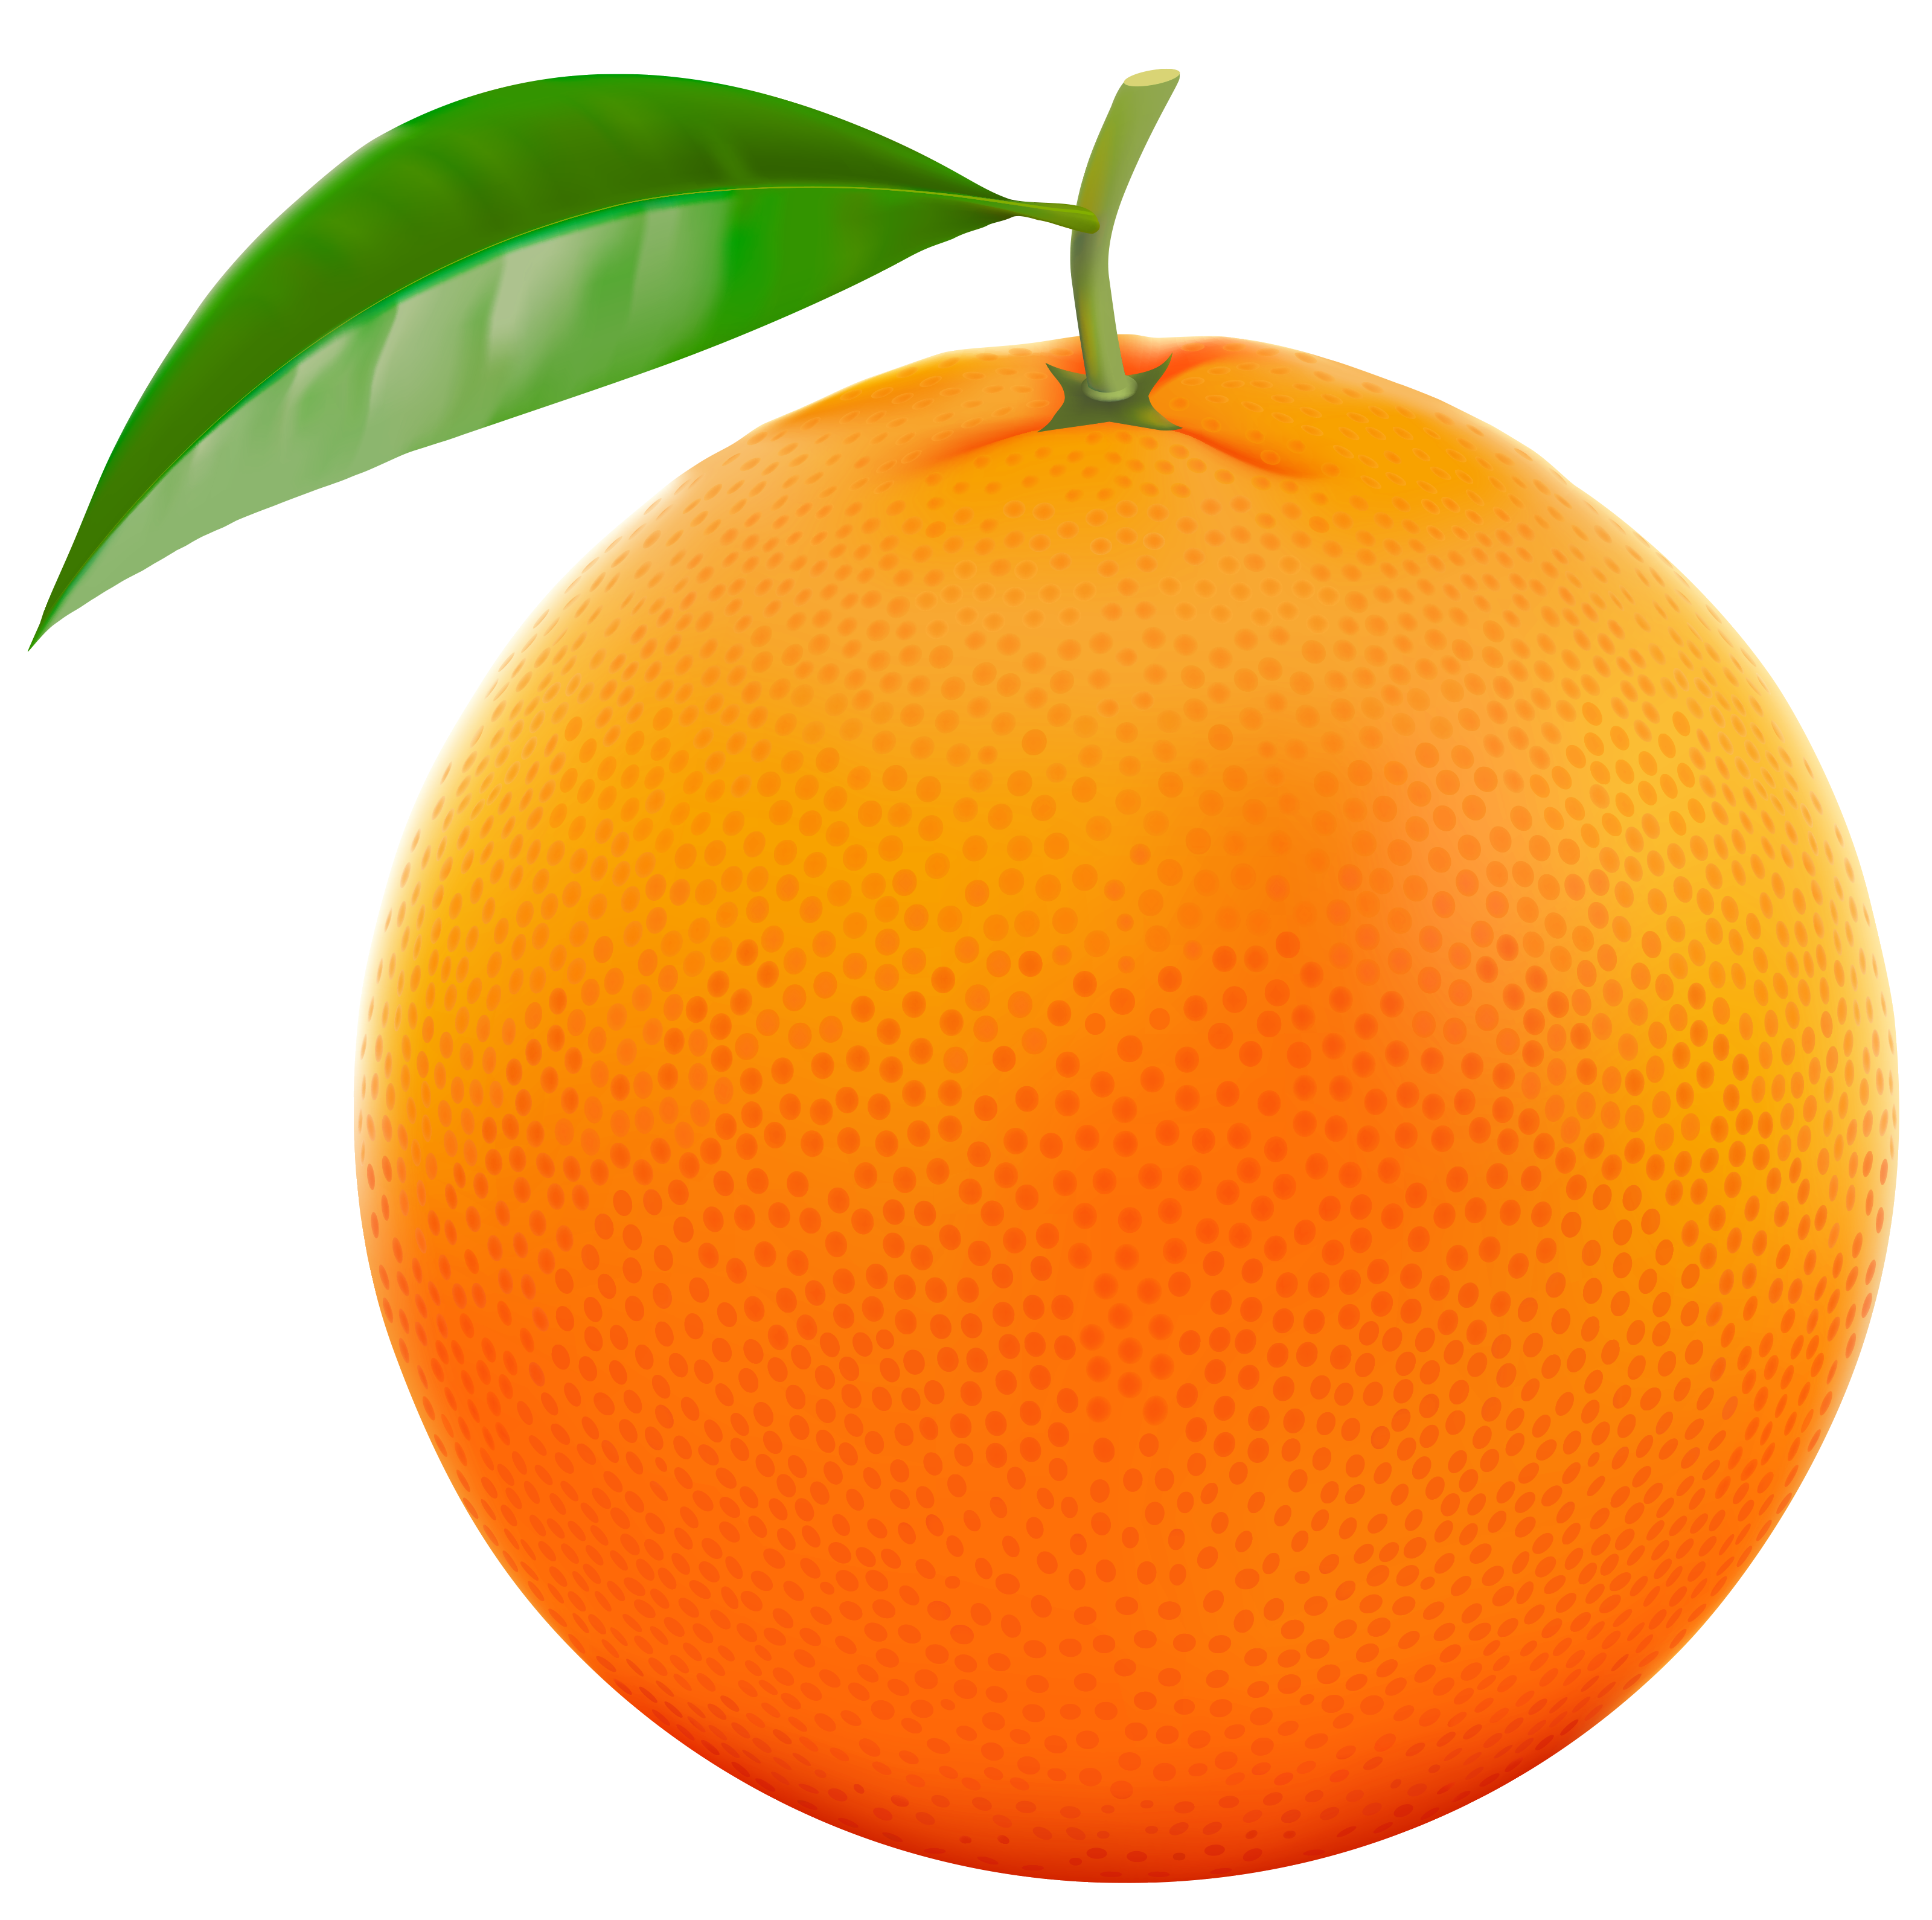 orange clipart transparent clipground #15311